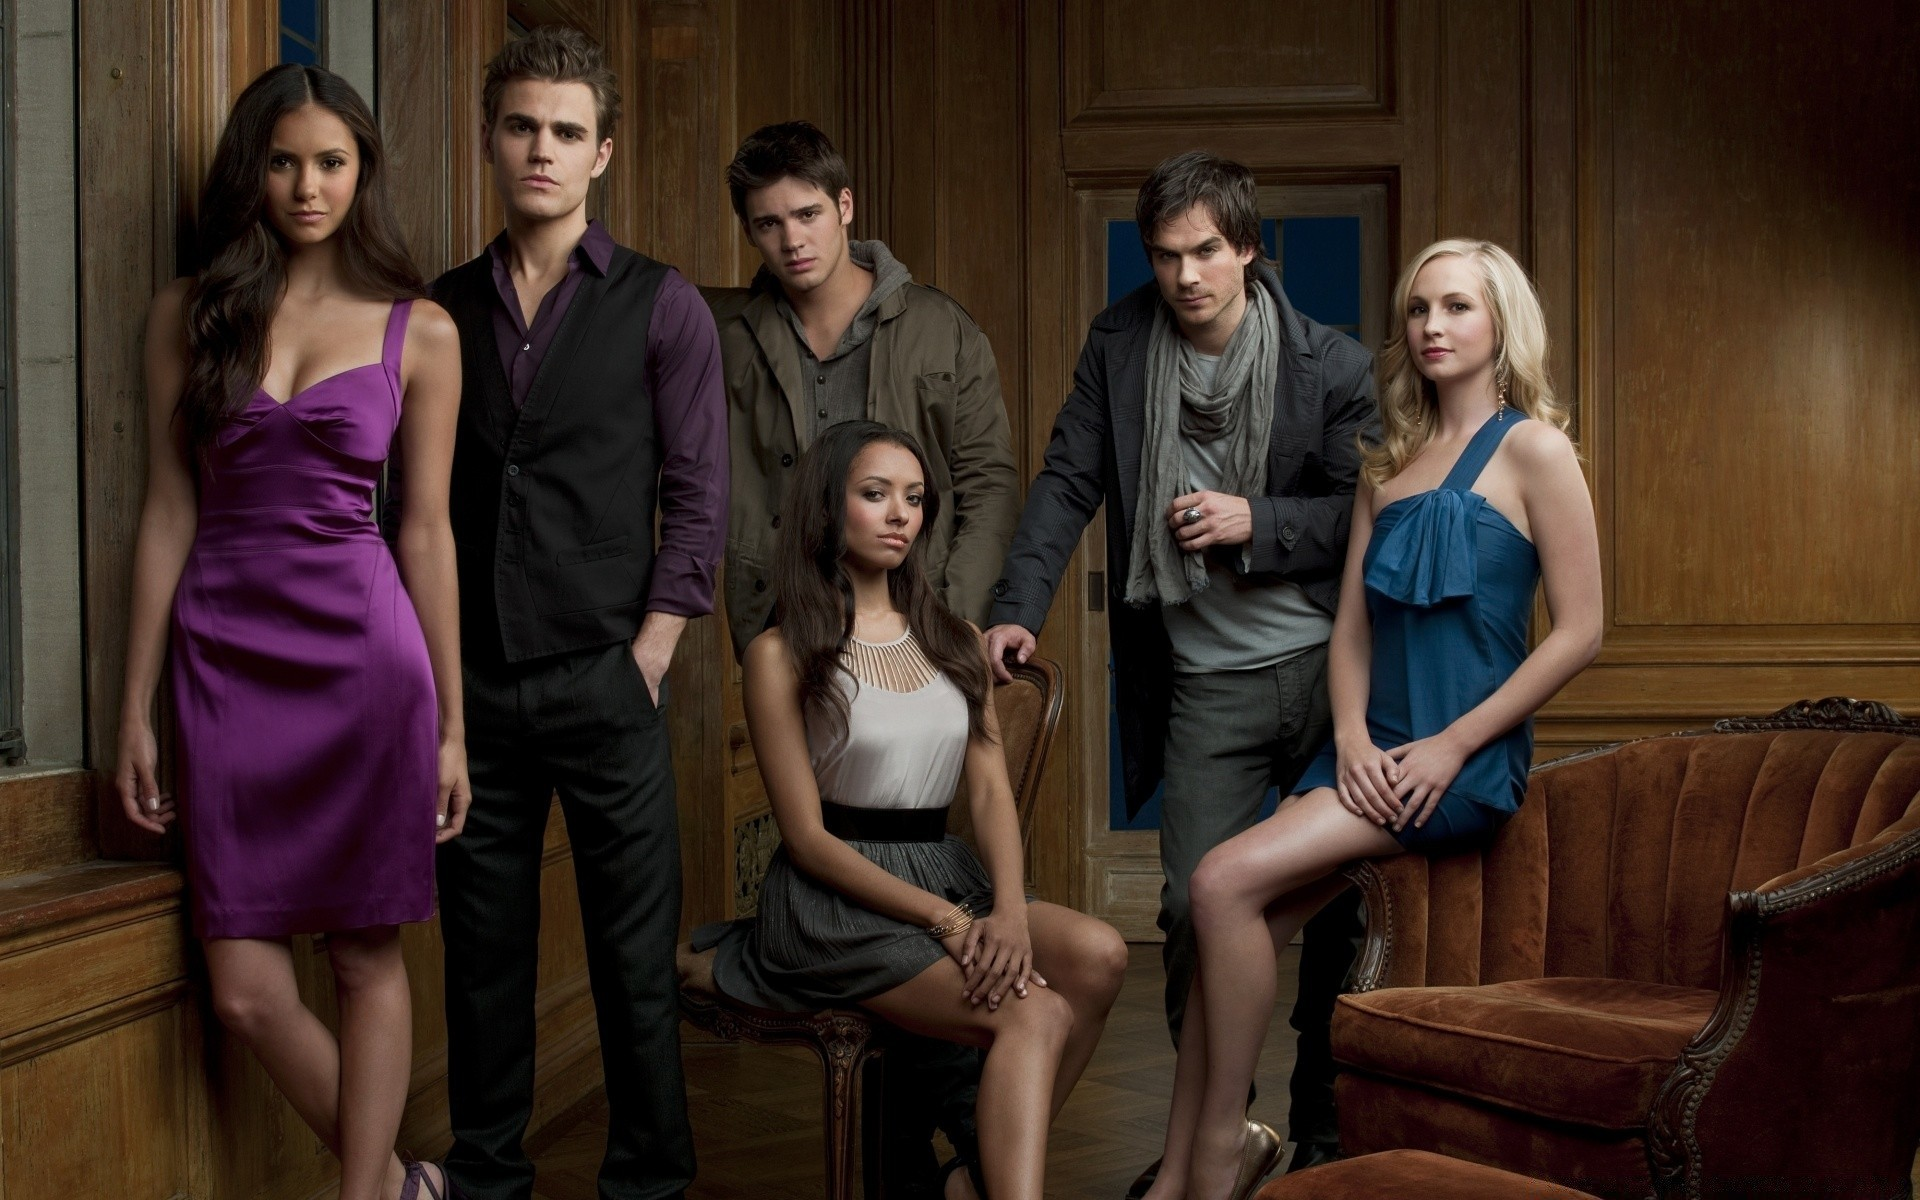 The vampire diaries android wallpapers for free voltagebd Gallery